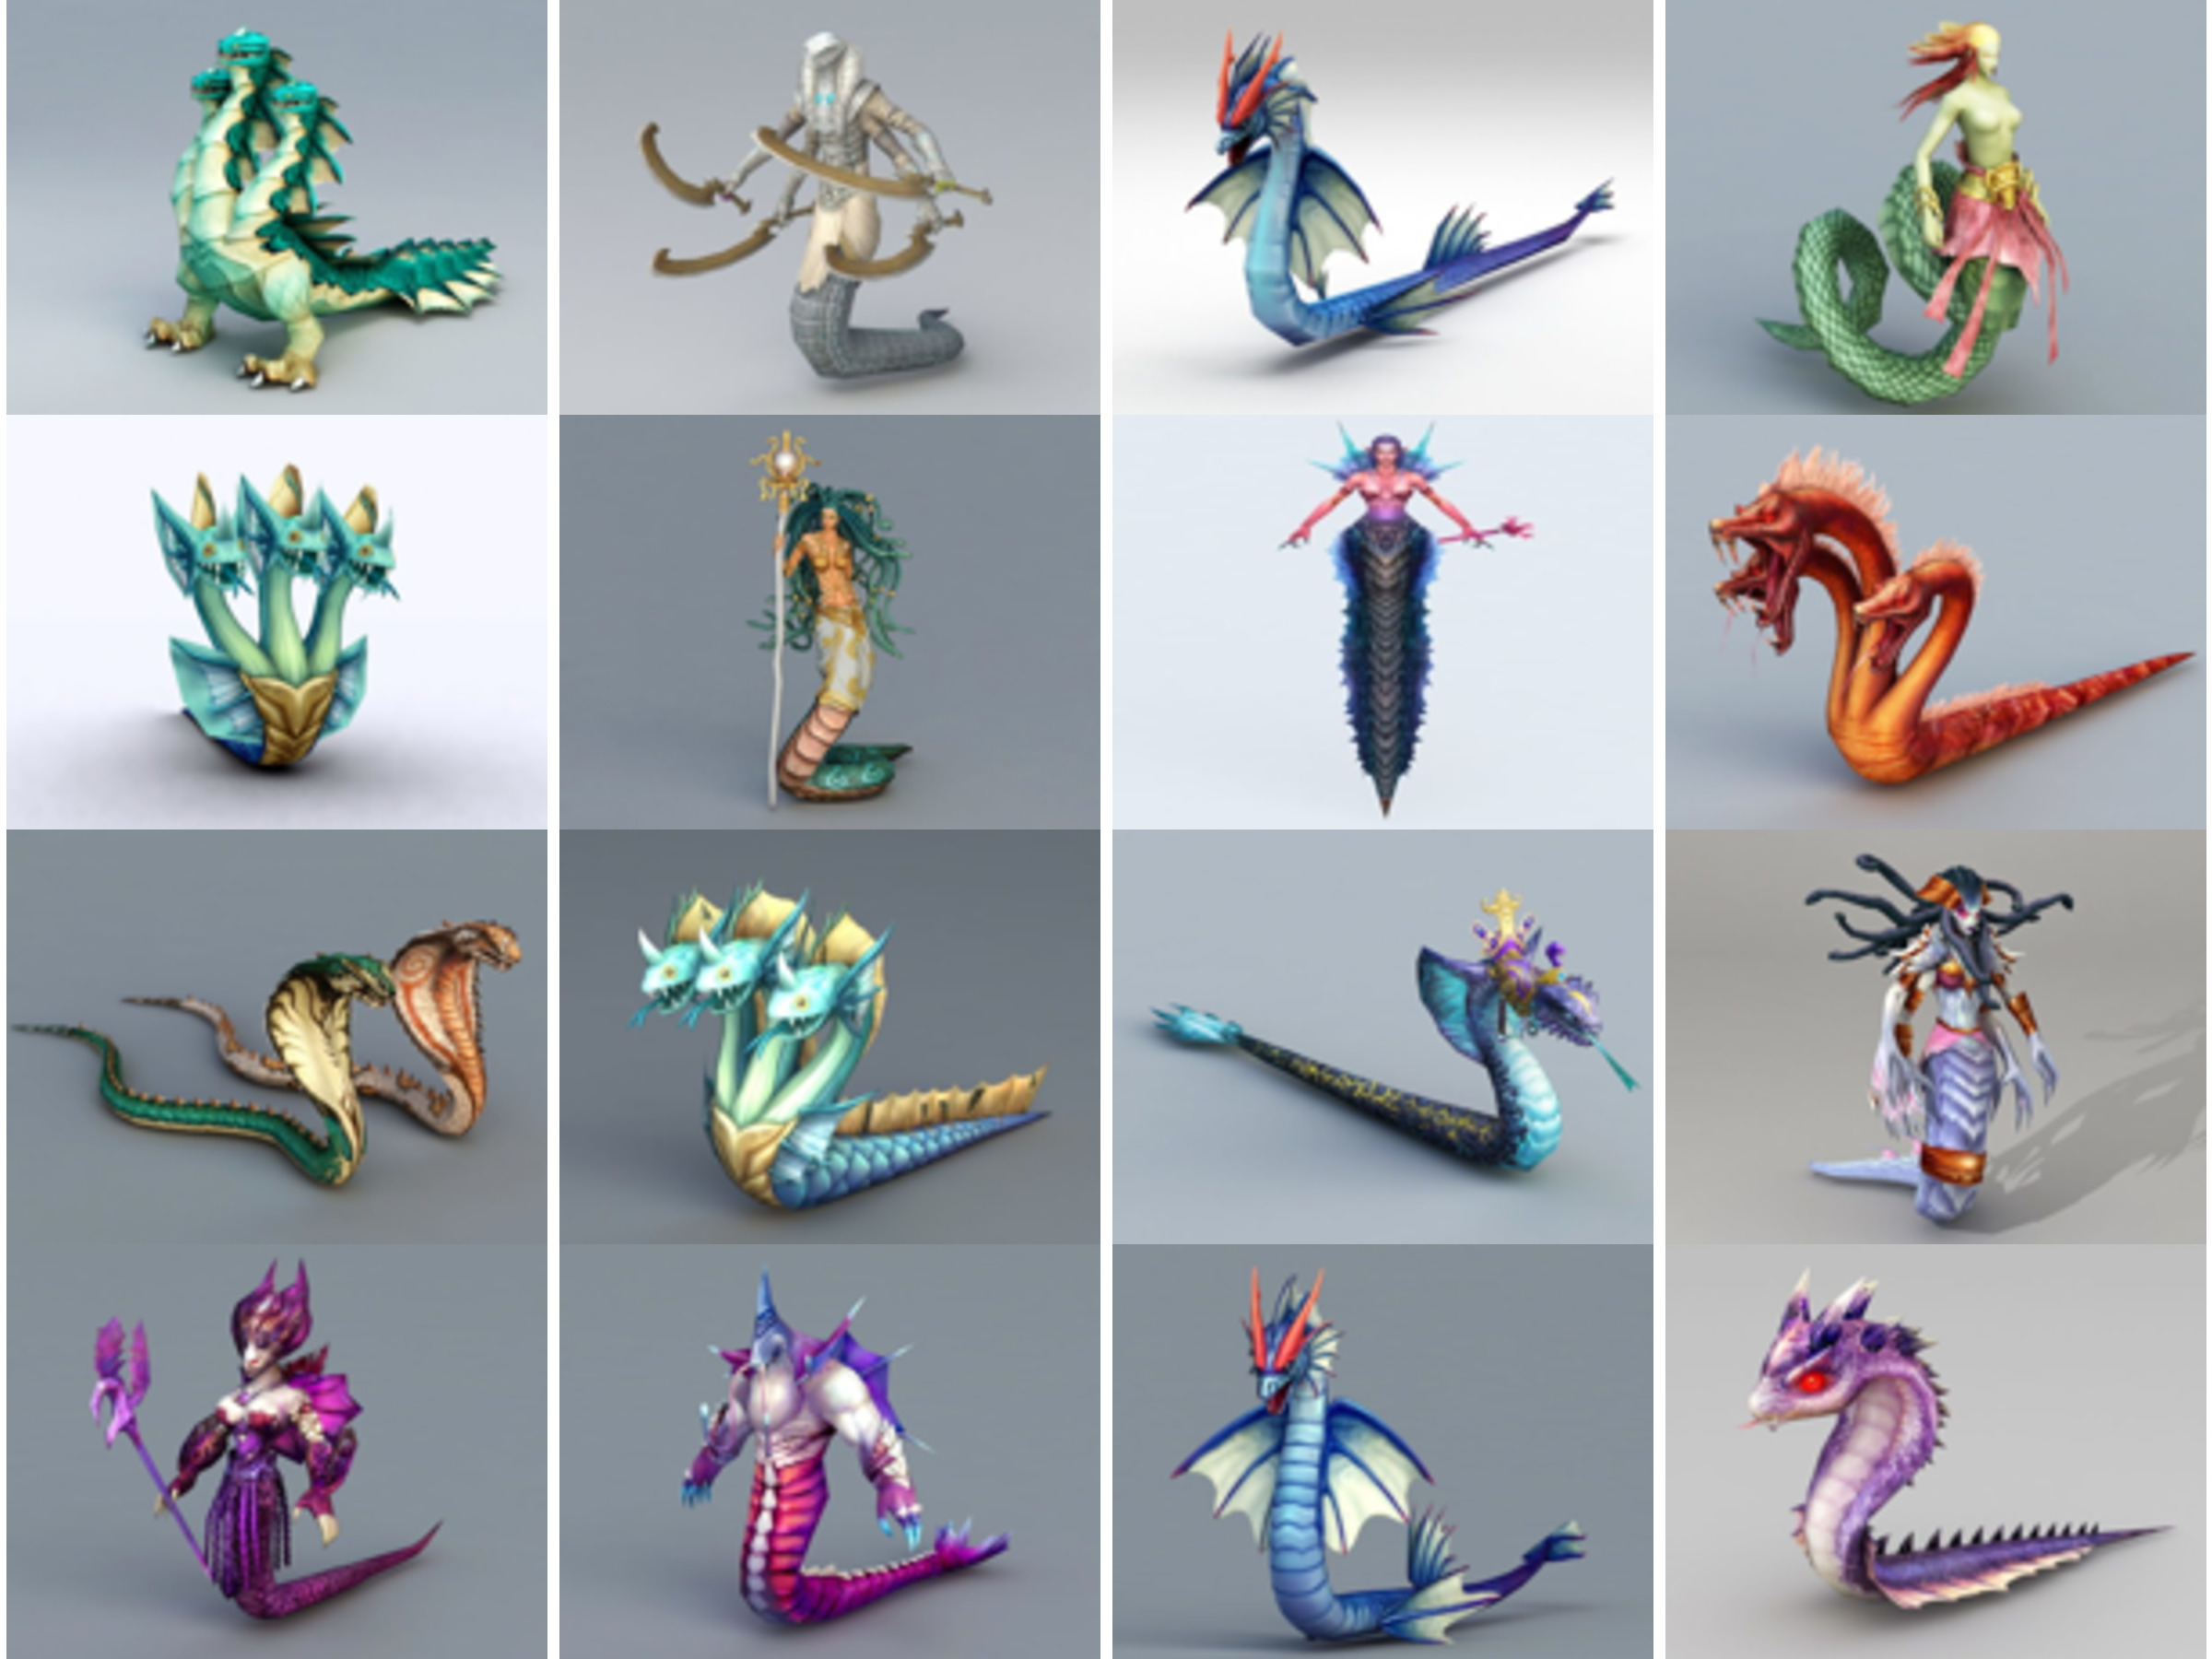 20 Snake Game Character Free 3D Models